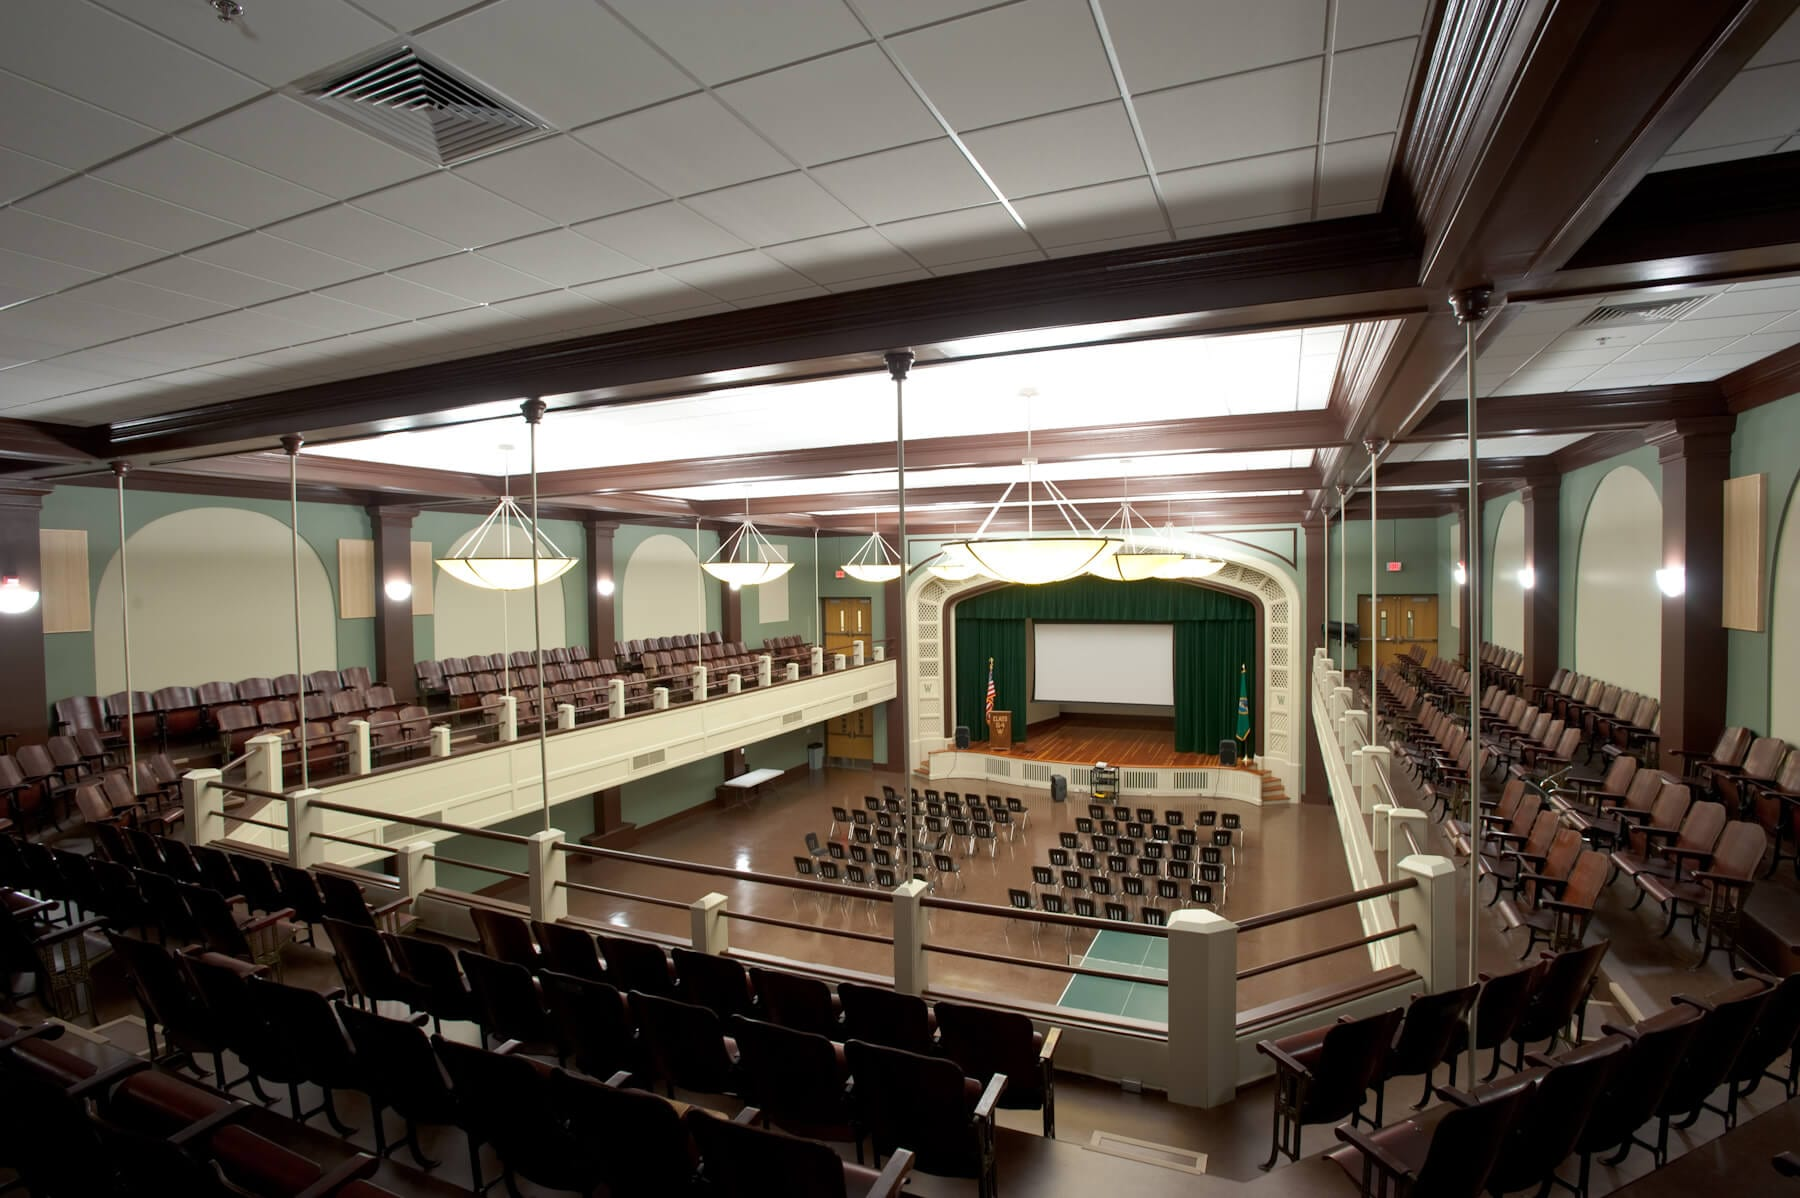 Expand Whatcom Middle School Auditorium